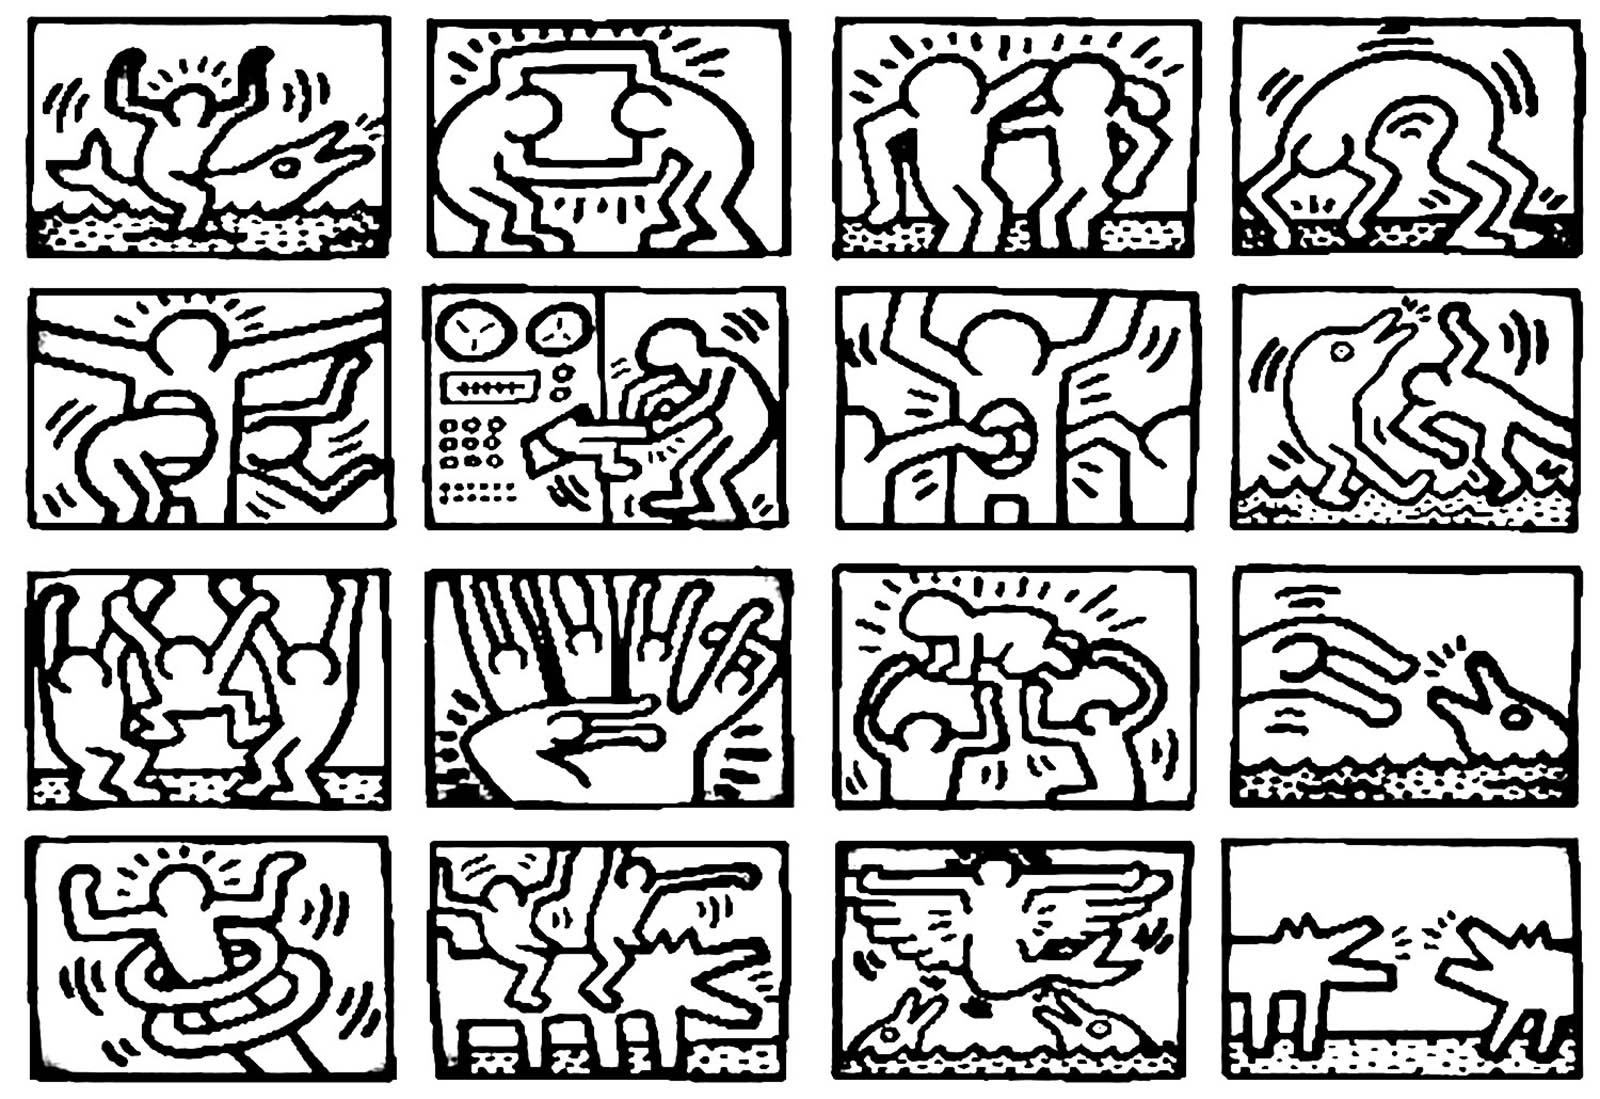 Keith haring - Coloring Pages for Adults